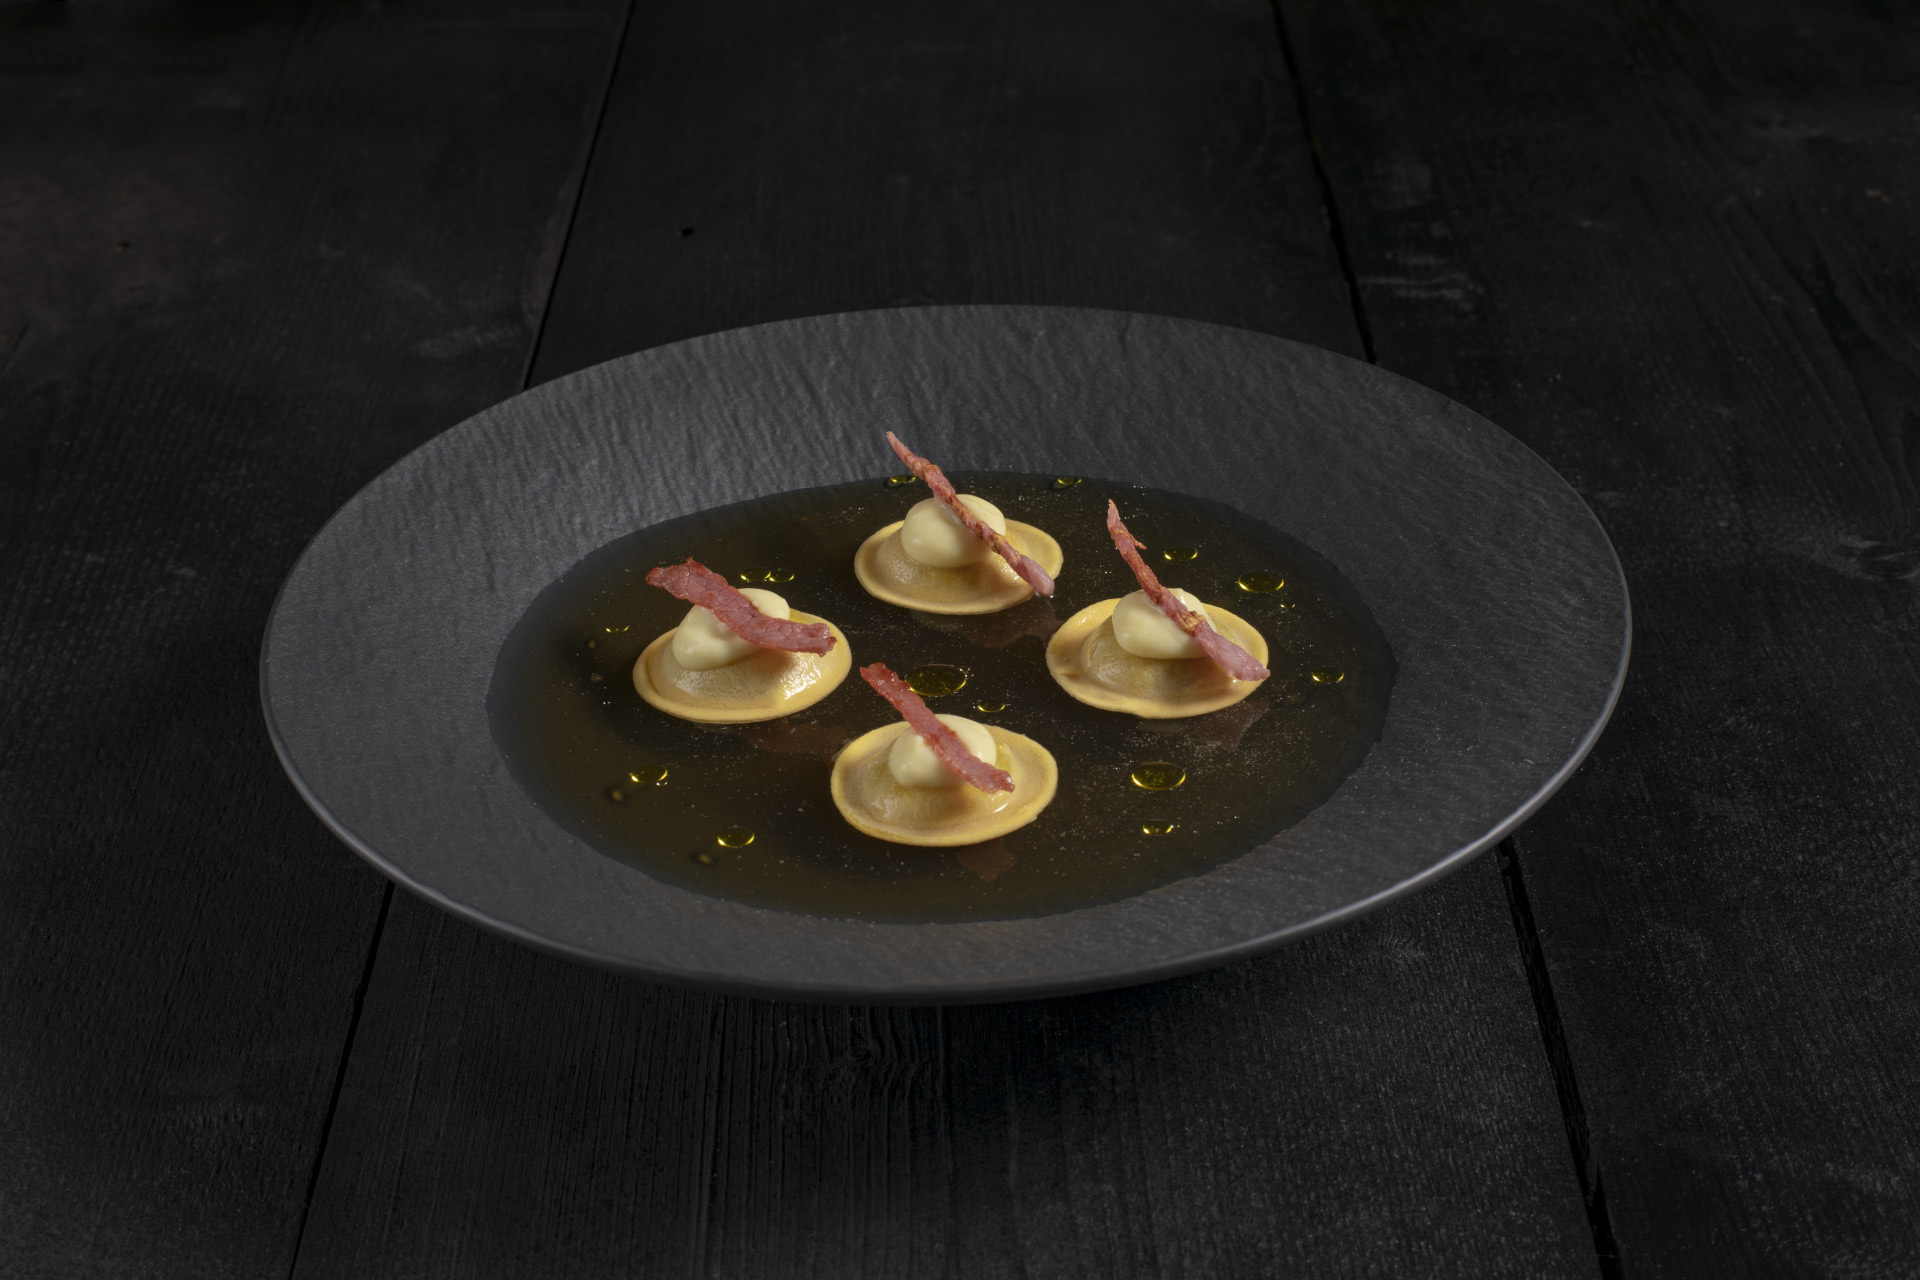 Gruyère ravioli in artichoke broth with toasted speck.